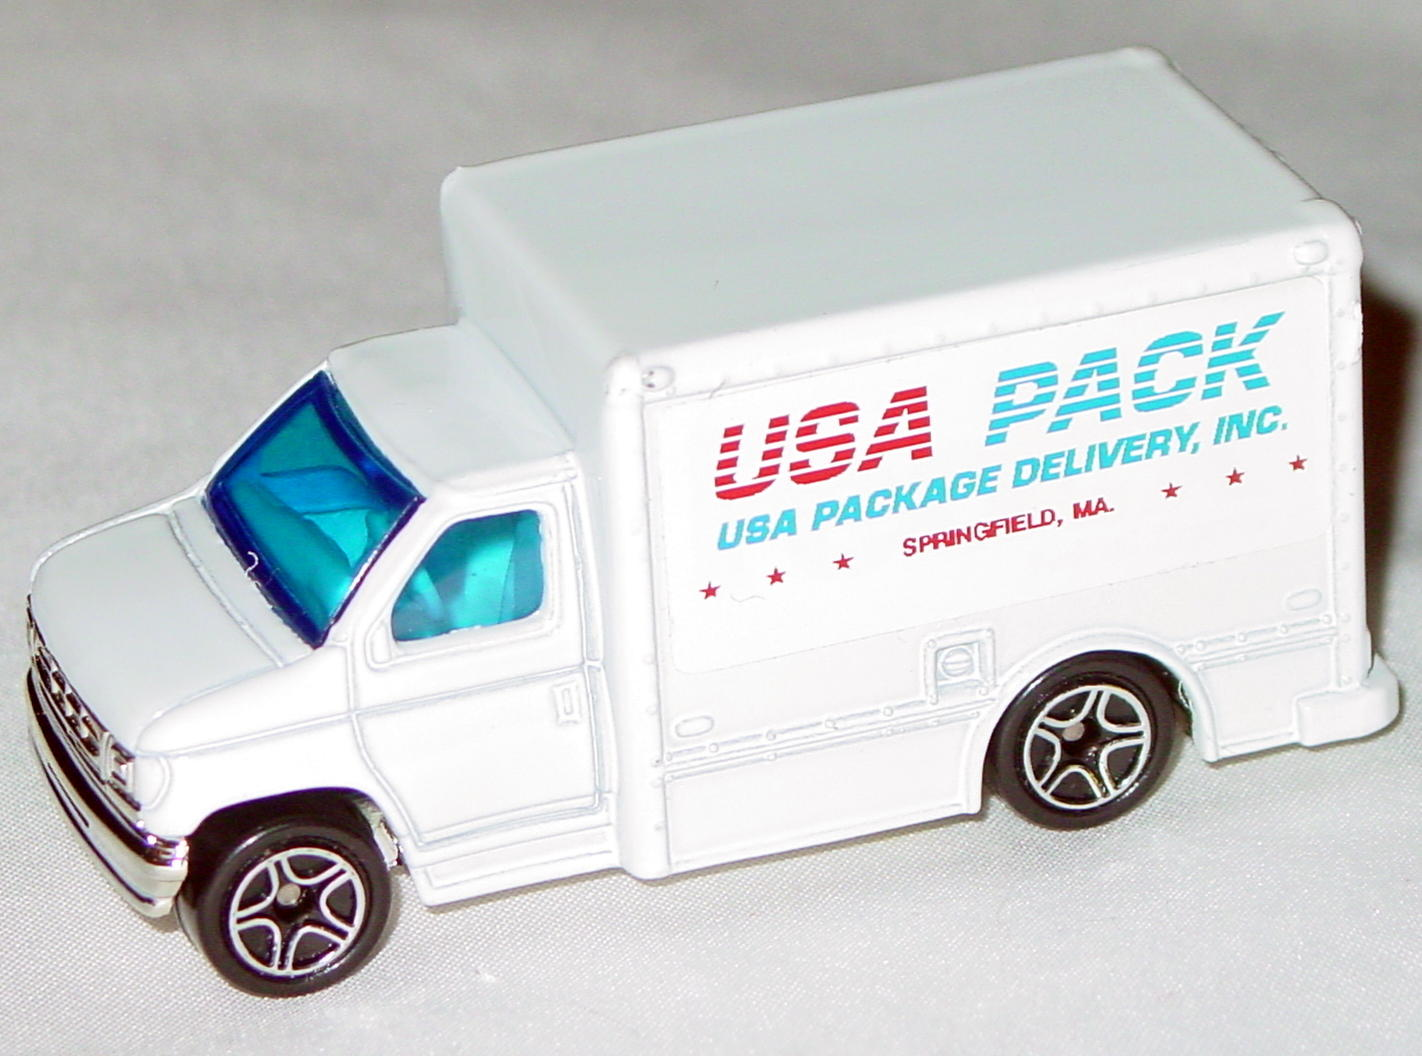 ASAP-CCI 23 H - Ford Box Van White USA Pack Code3 Bruce Cohen